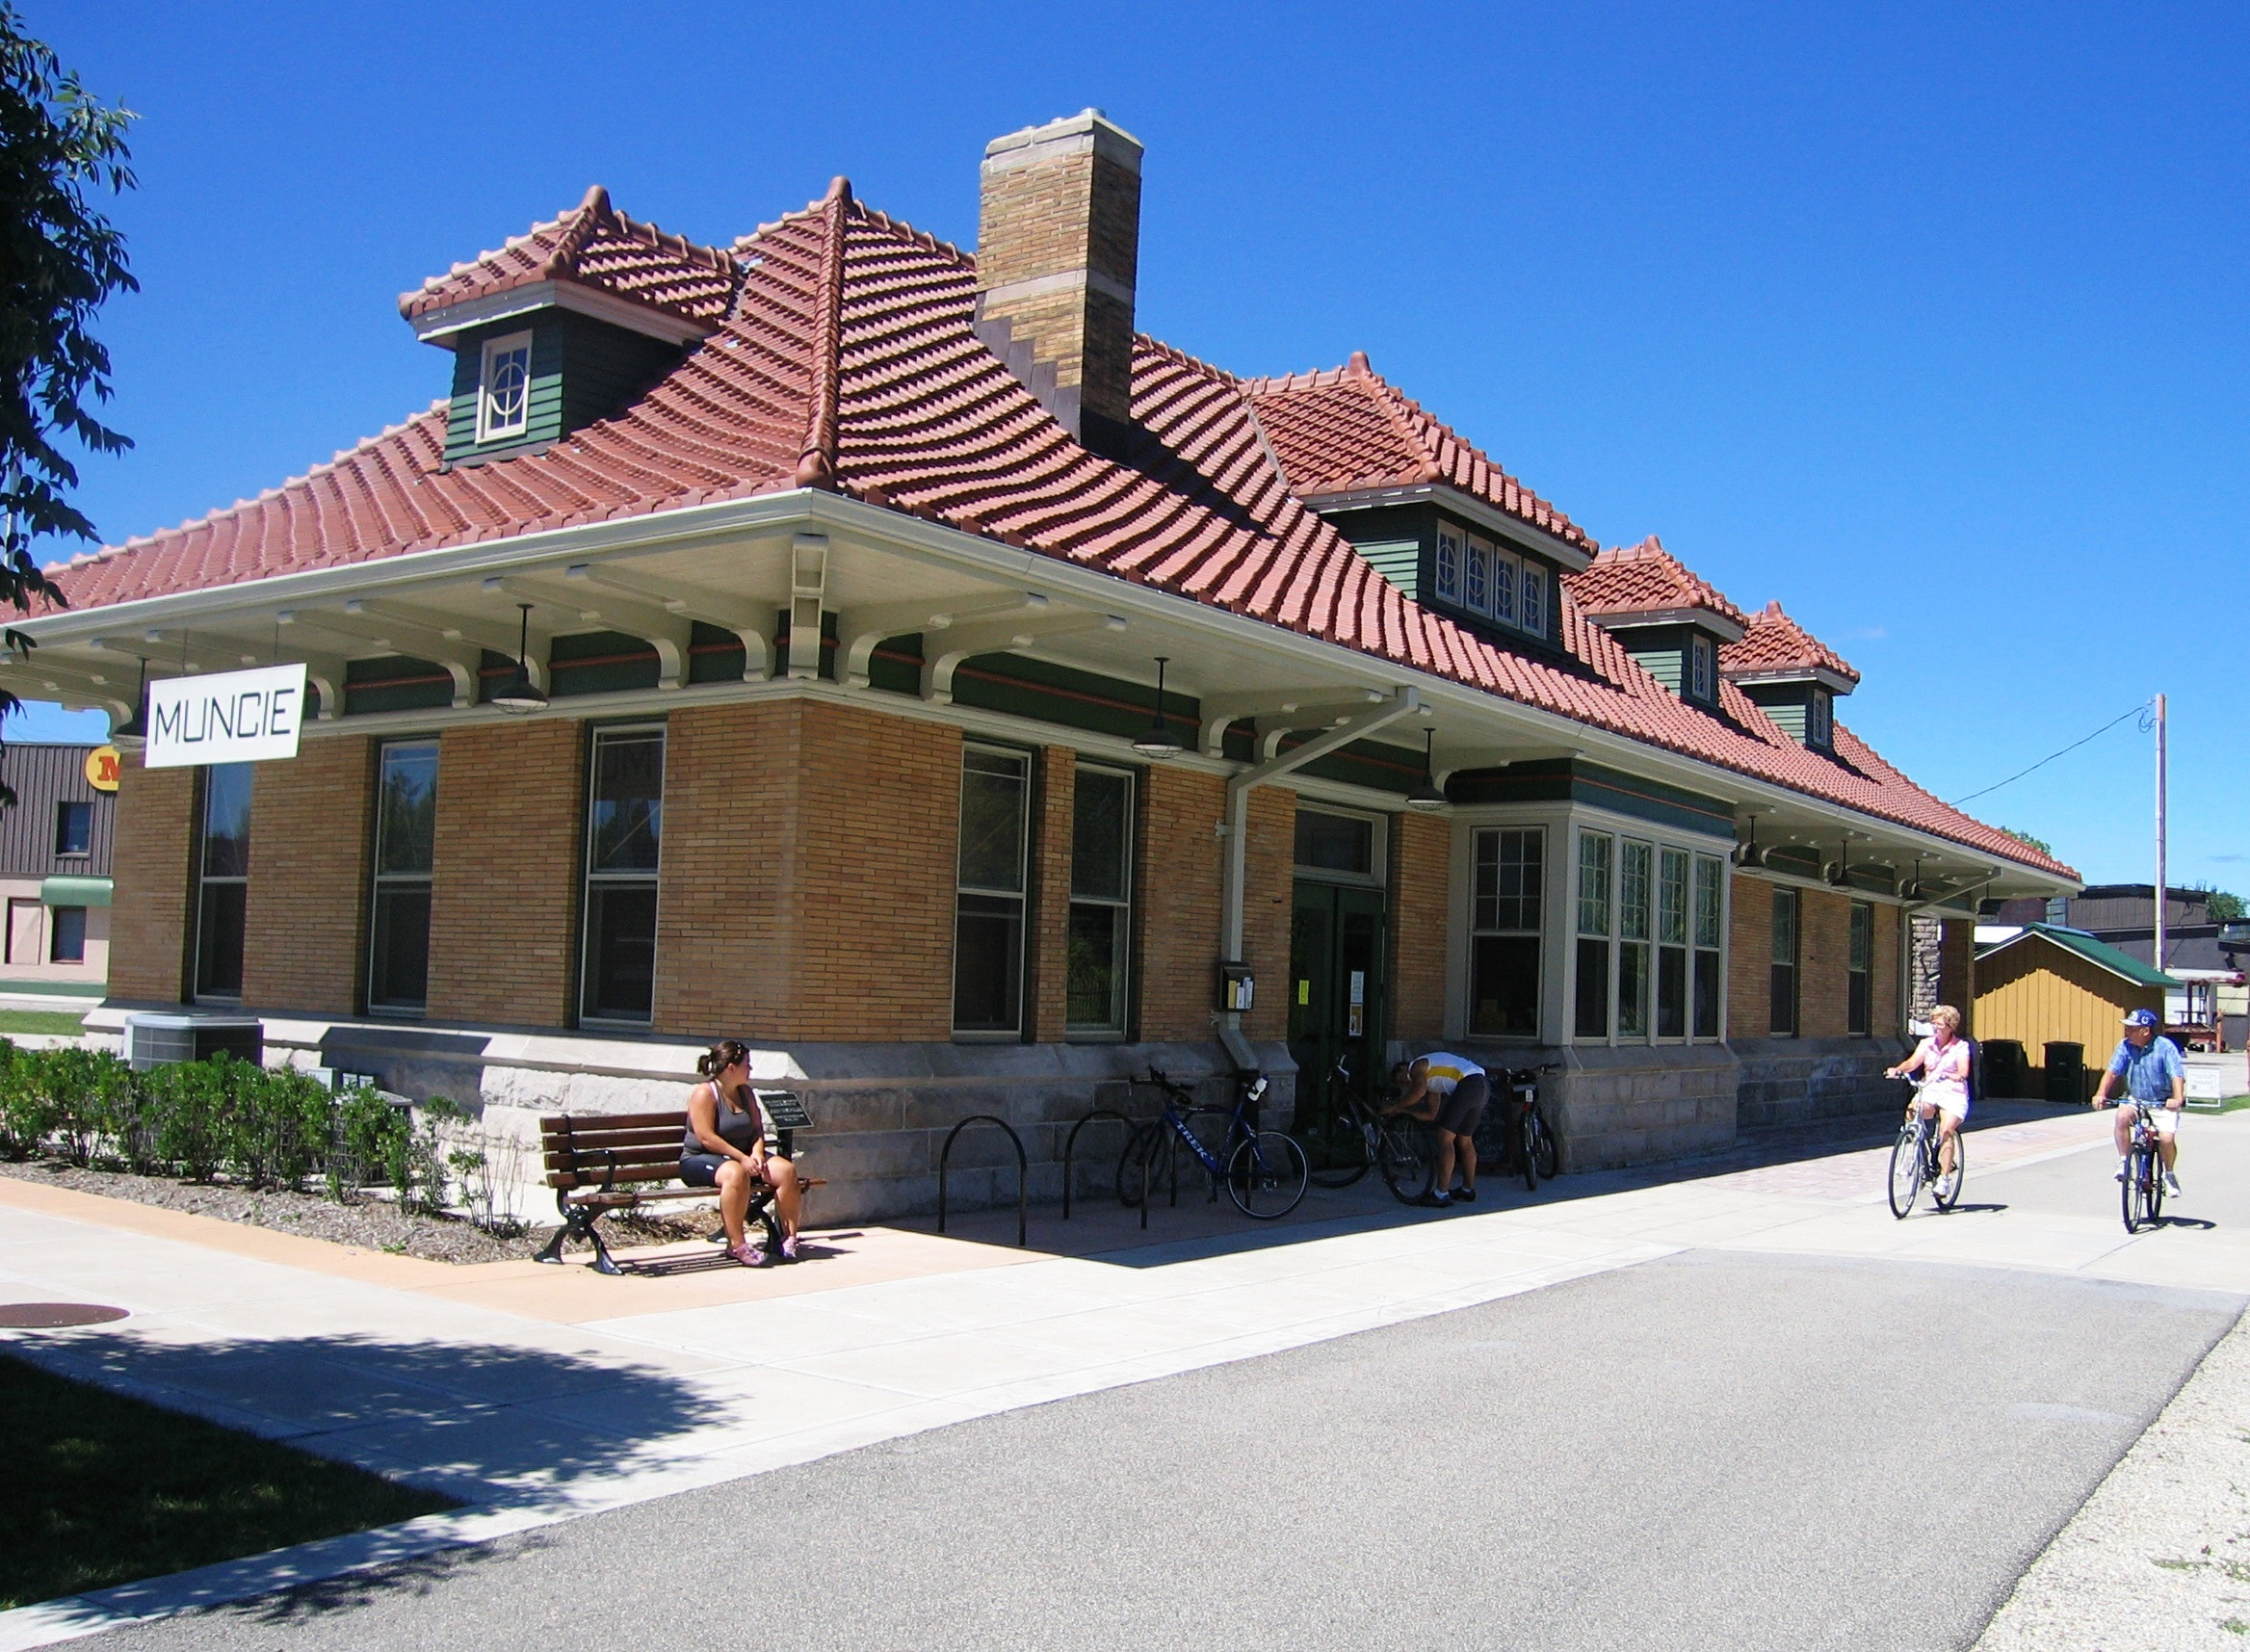 Bicyclists on the Cardinal Greenway pass by the Muncie trailhead in the restored Chesapeake and Ohio Depot (1904), listed on the National Register of Historic Places